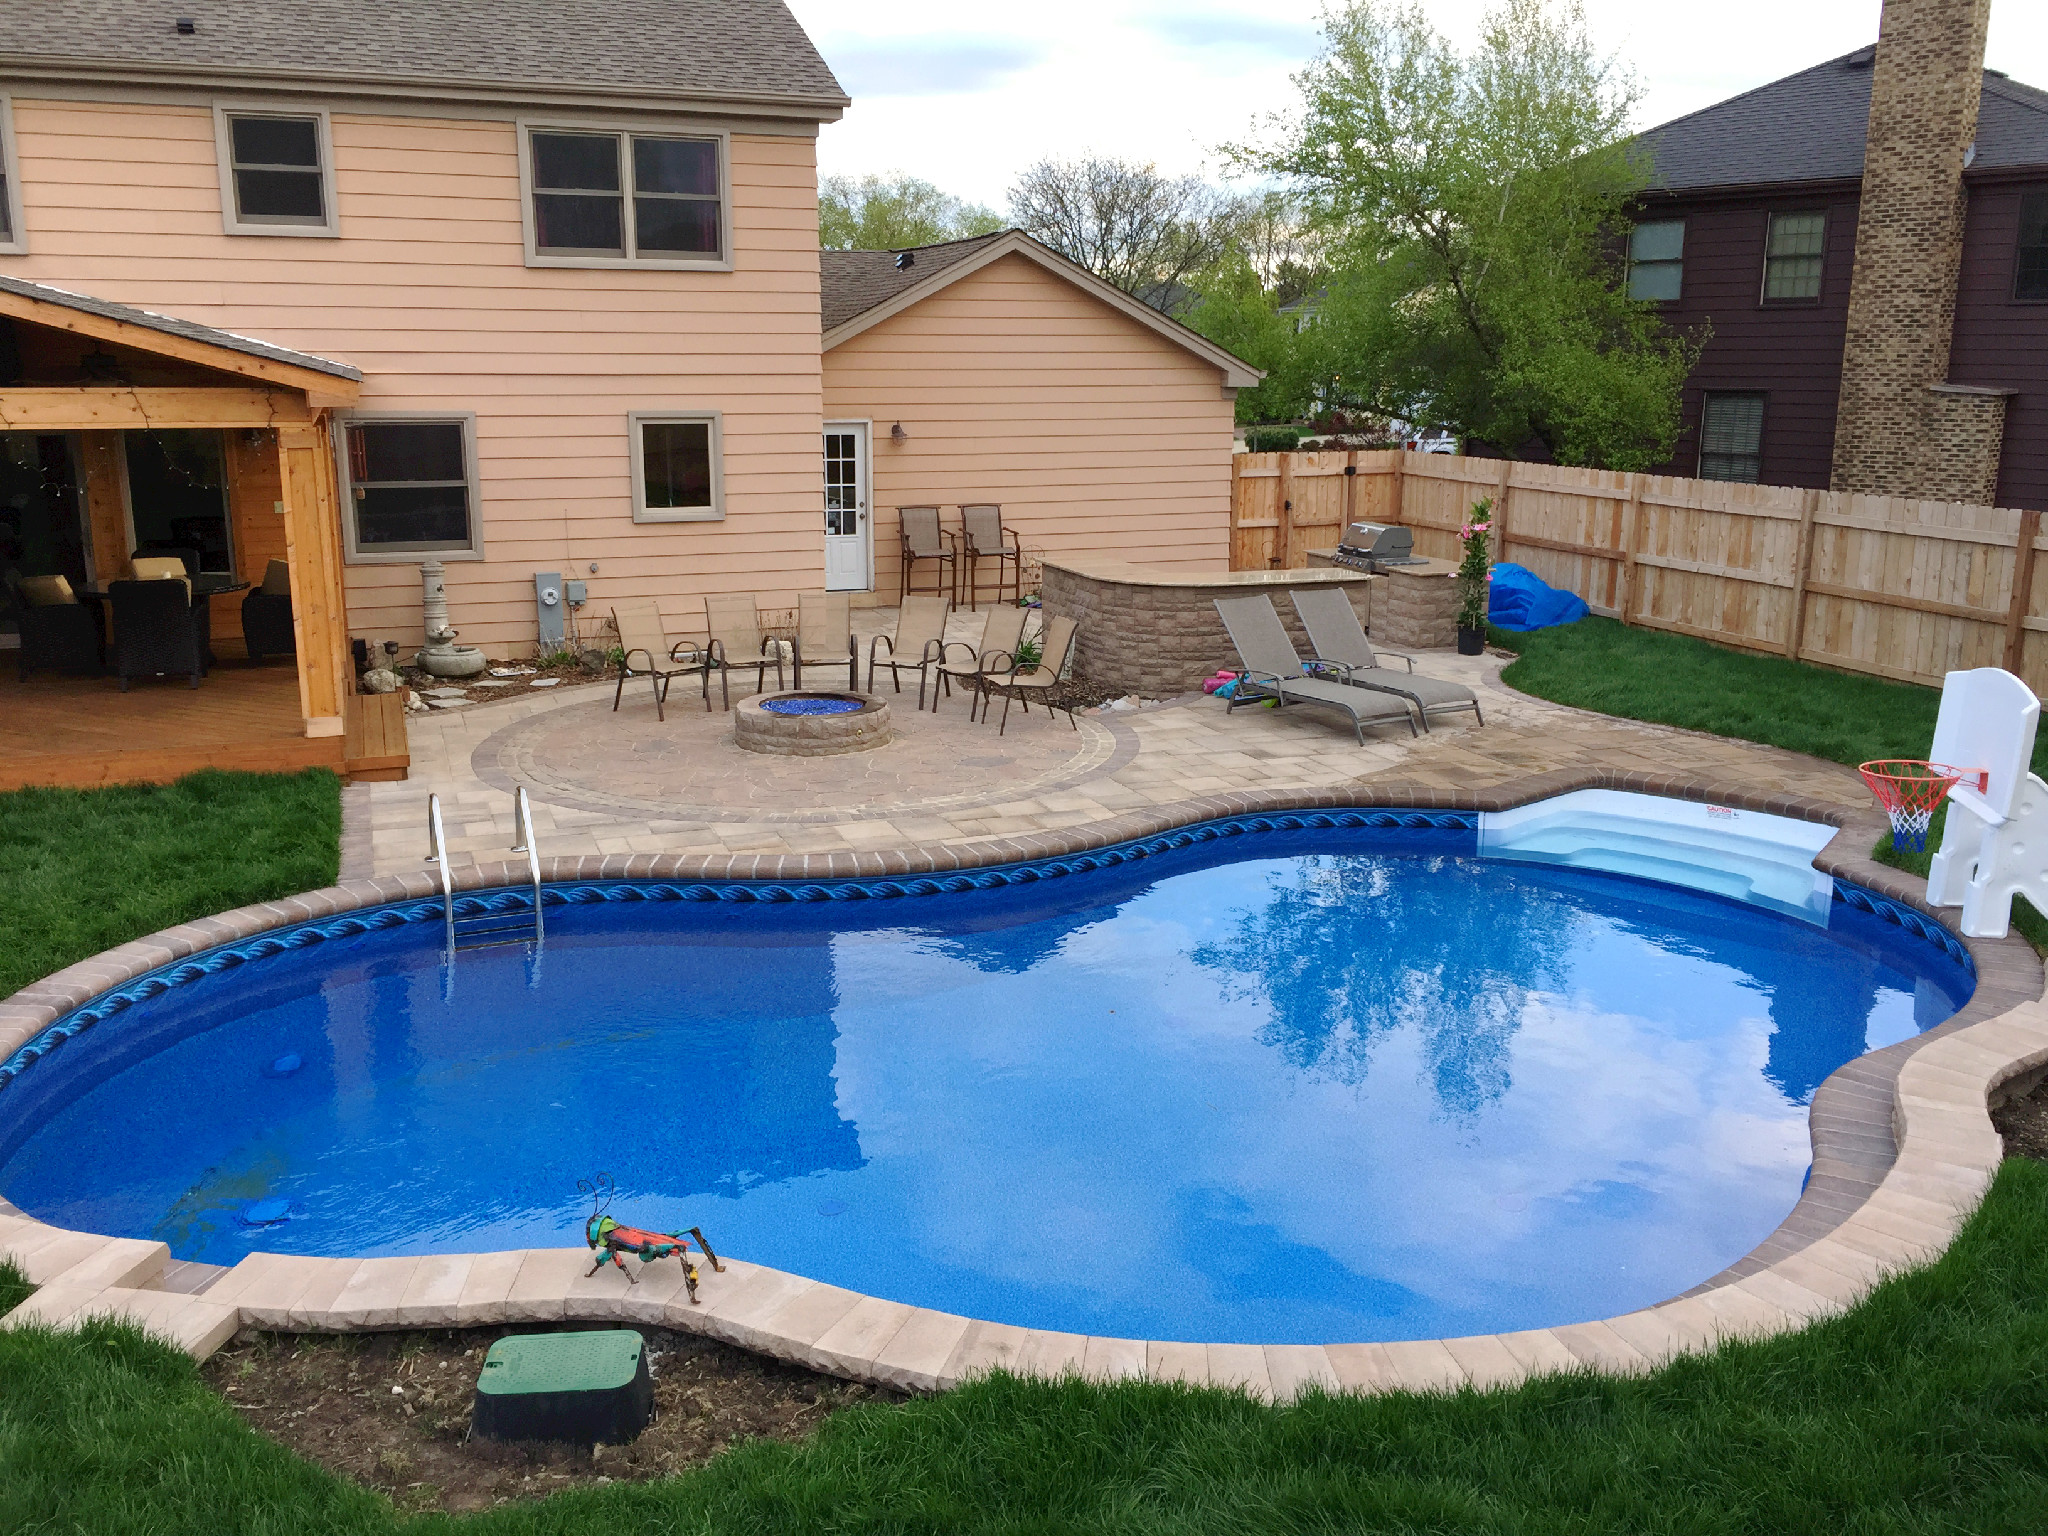 How Much Does a Chicagoland Pool Deck Cost? | Archadeck ... on Pool Deck Patio Ideas id=66349